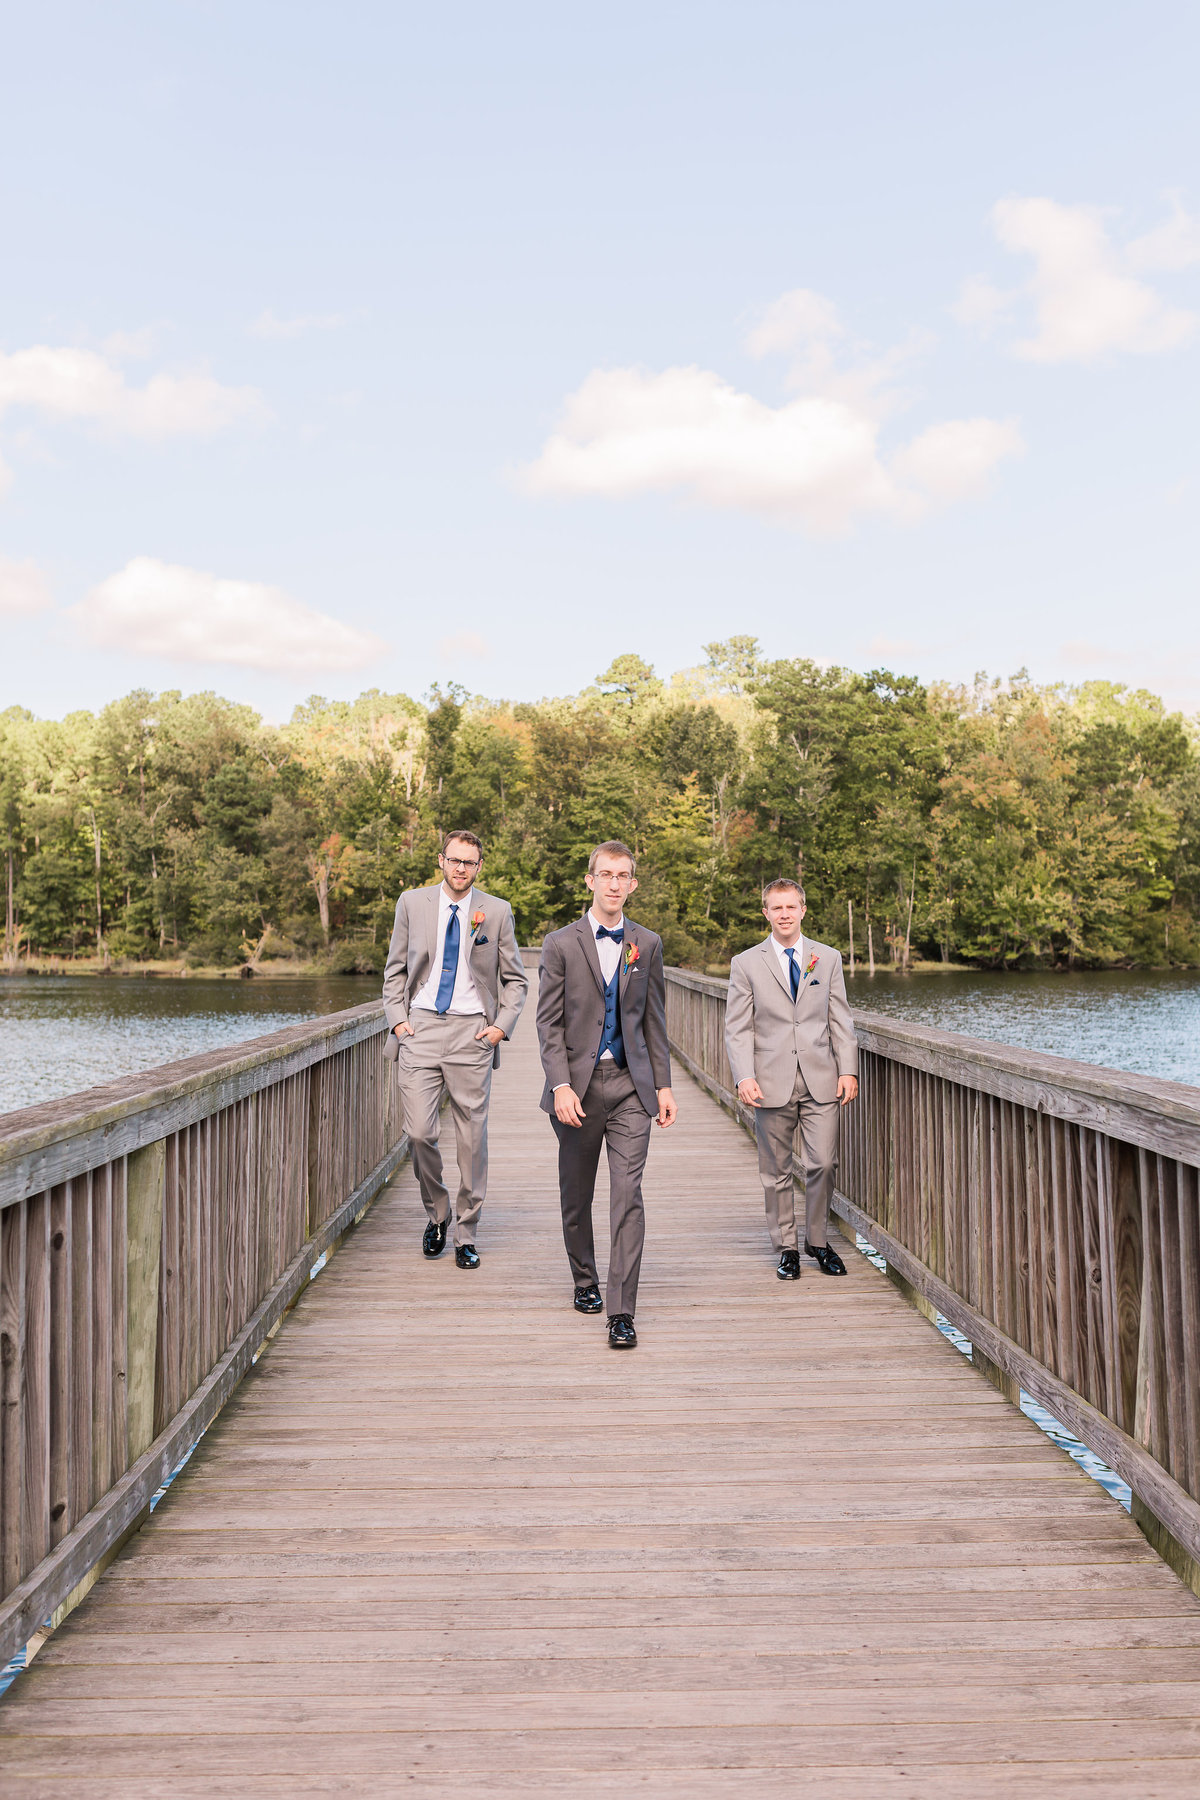 A groom and his groomsmen walk down the boardwalk at Newport News Park